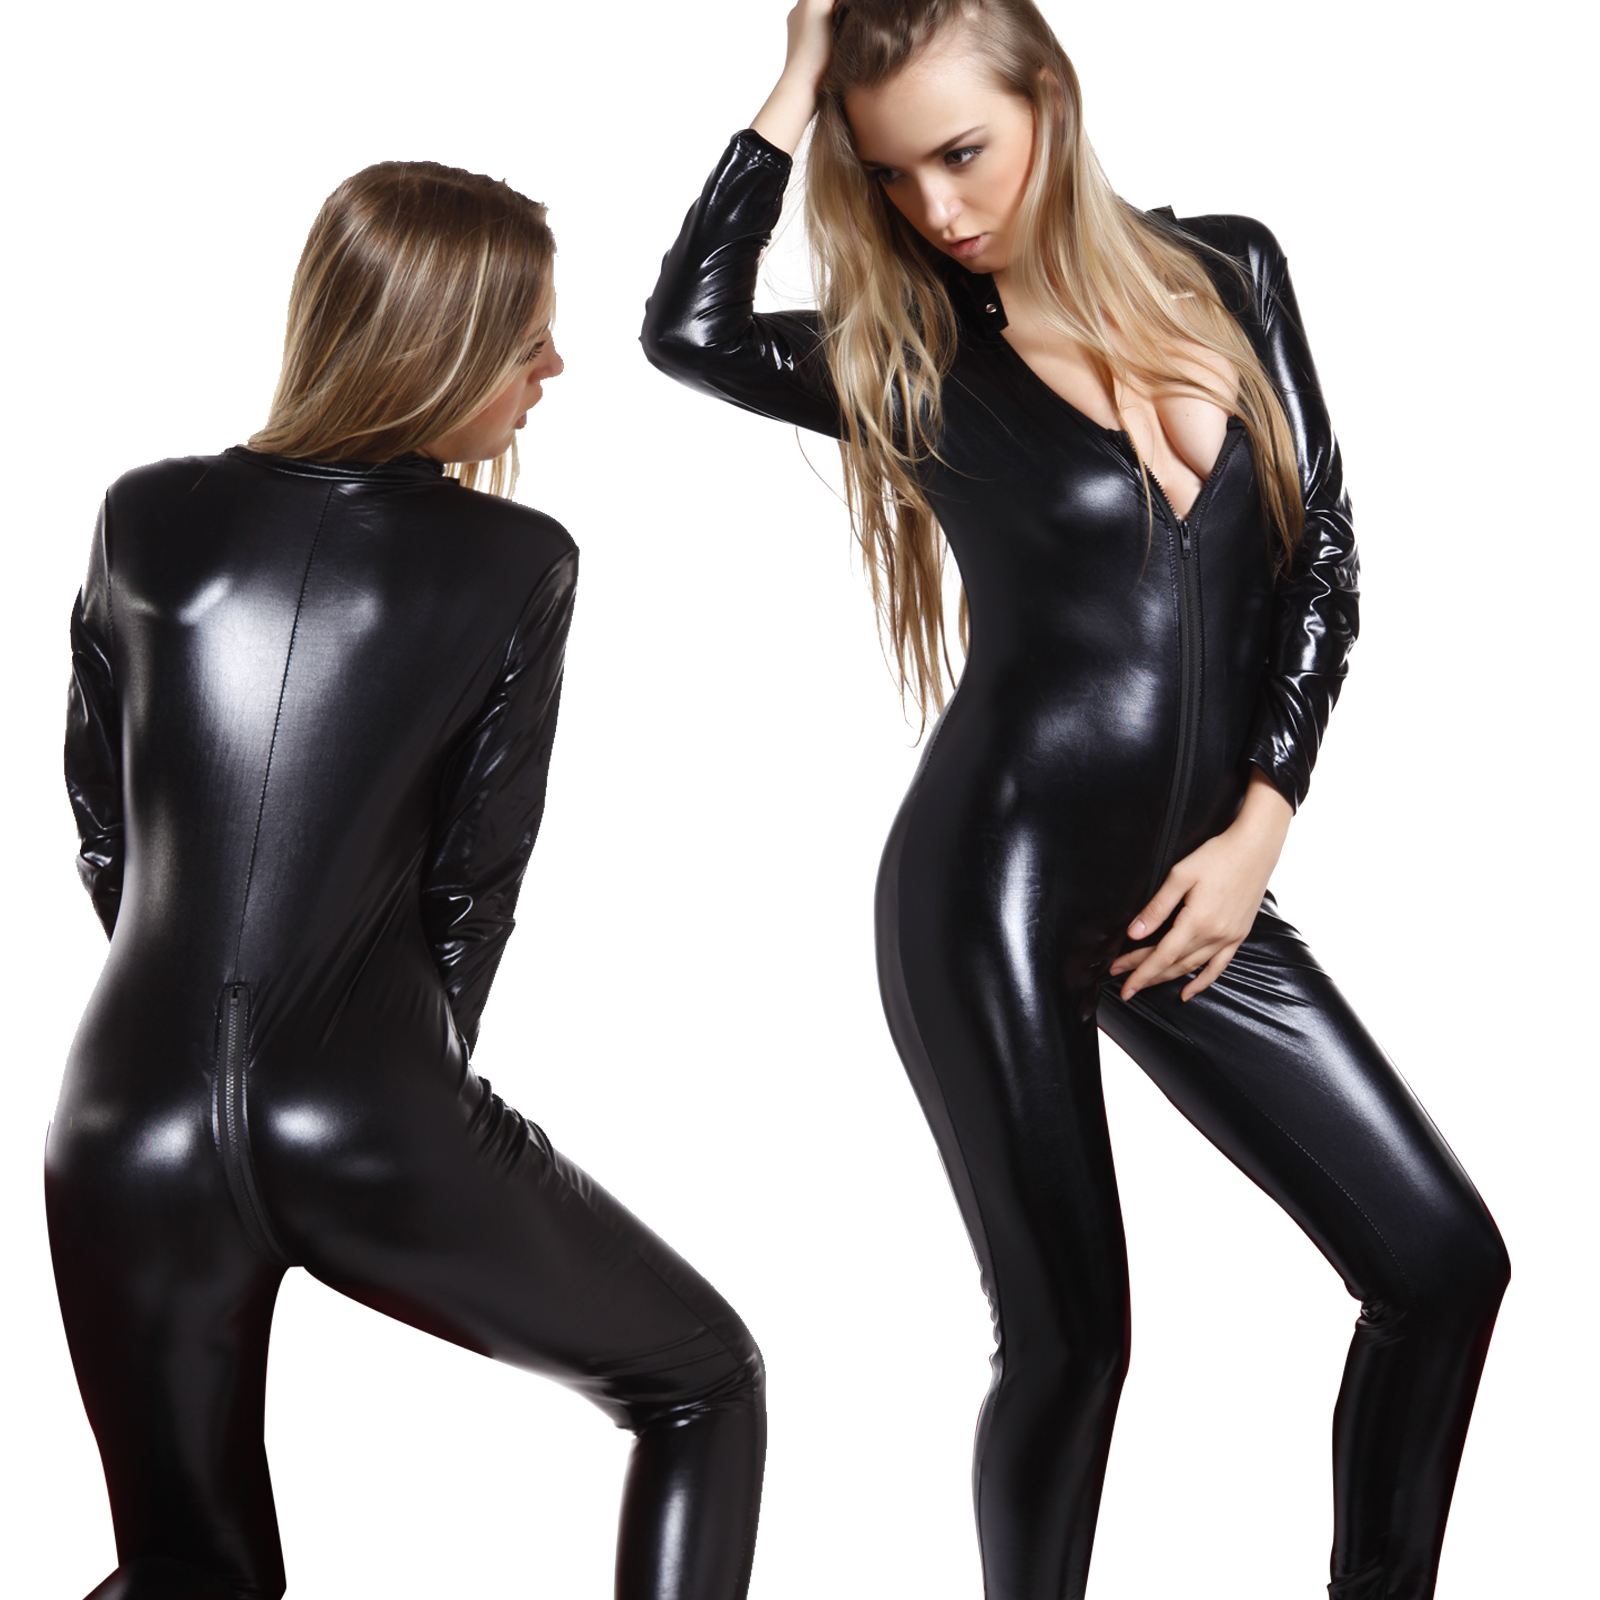 07655d31bd Details about Sexy Ladies Black Faux Leather Wet Look Catsuit Bodysuit  Catwoman Cat Costume